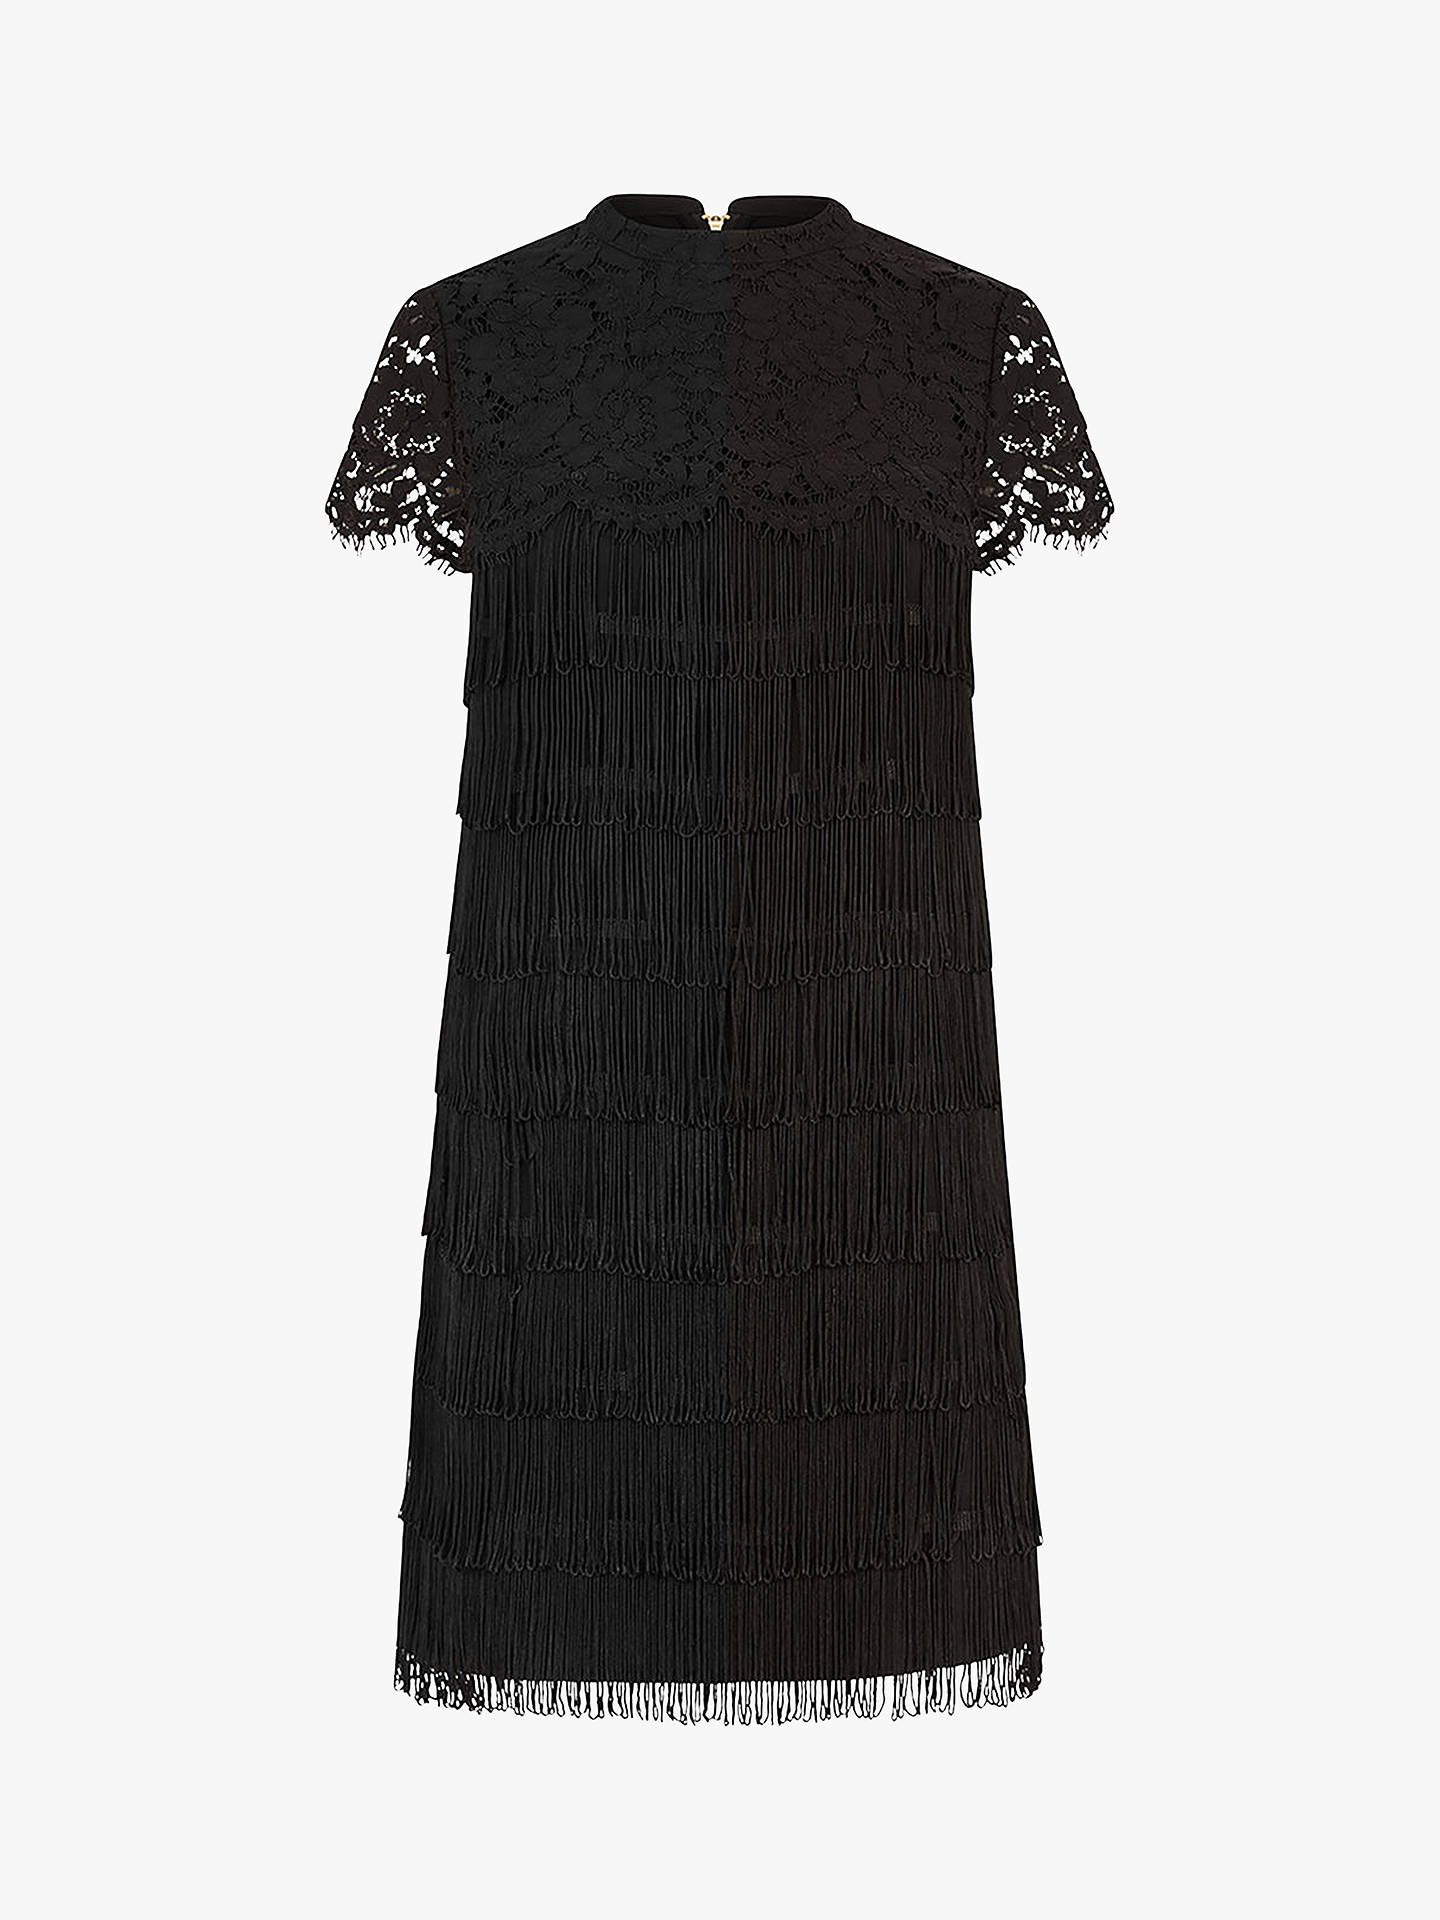 7cf013fbdafc ... Buy Oasis Lace Fringe Dress, Black, 6L Online at johnlewis.com ...